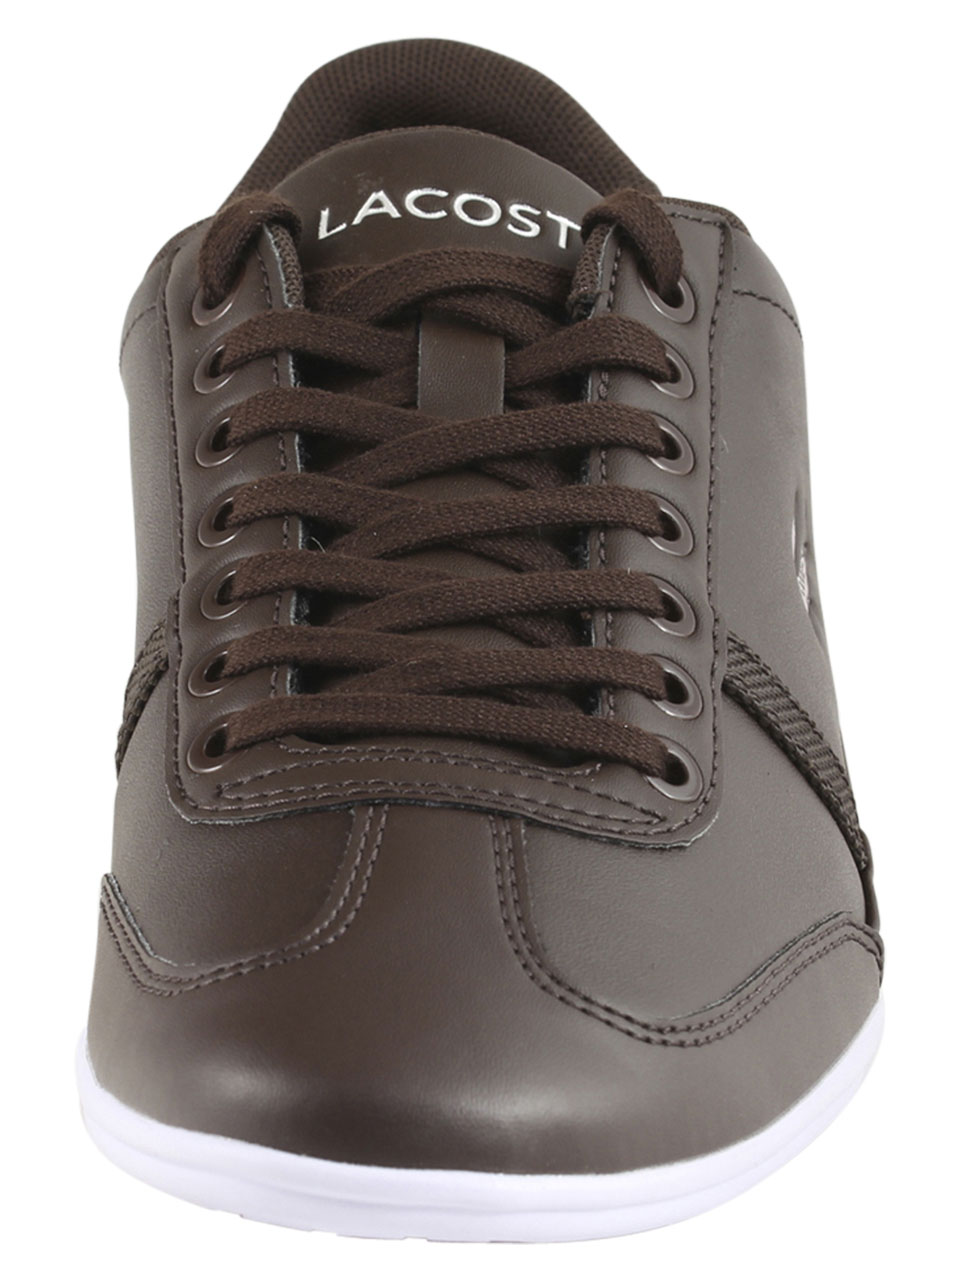 Lacoste-Men-039-s-Misano-Sport-118-Sneakers-Shoes thumbnail 16